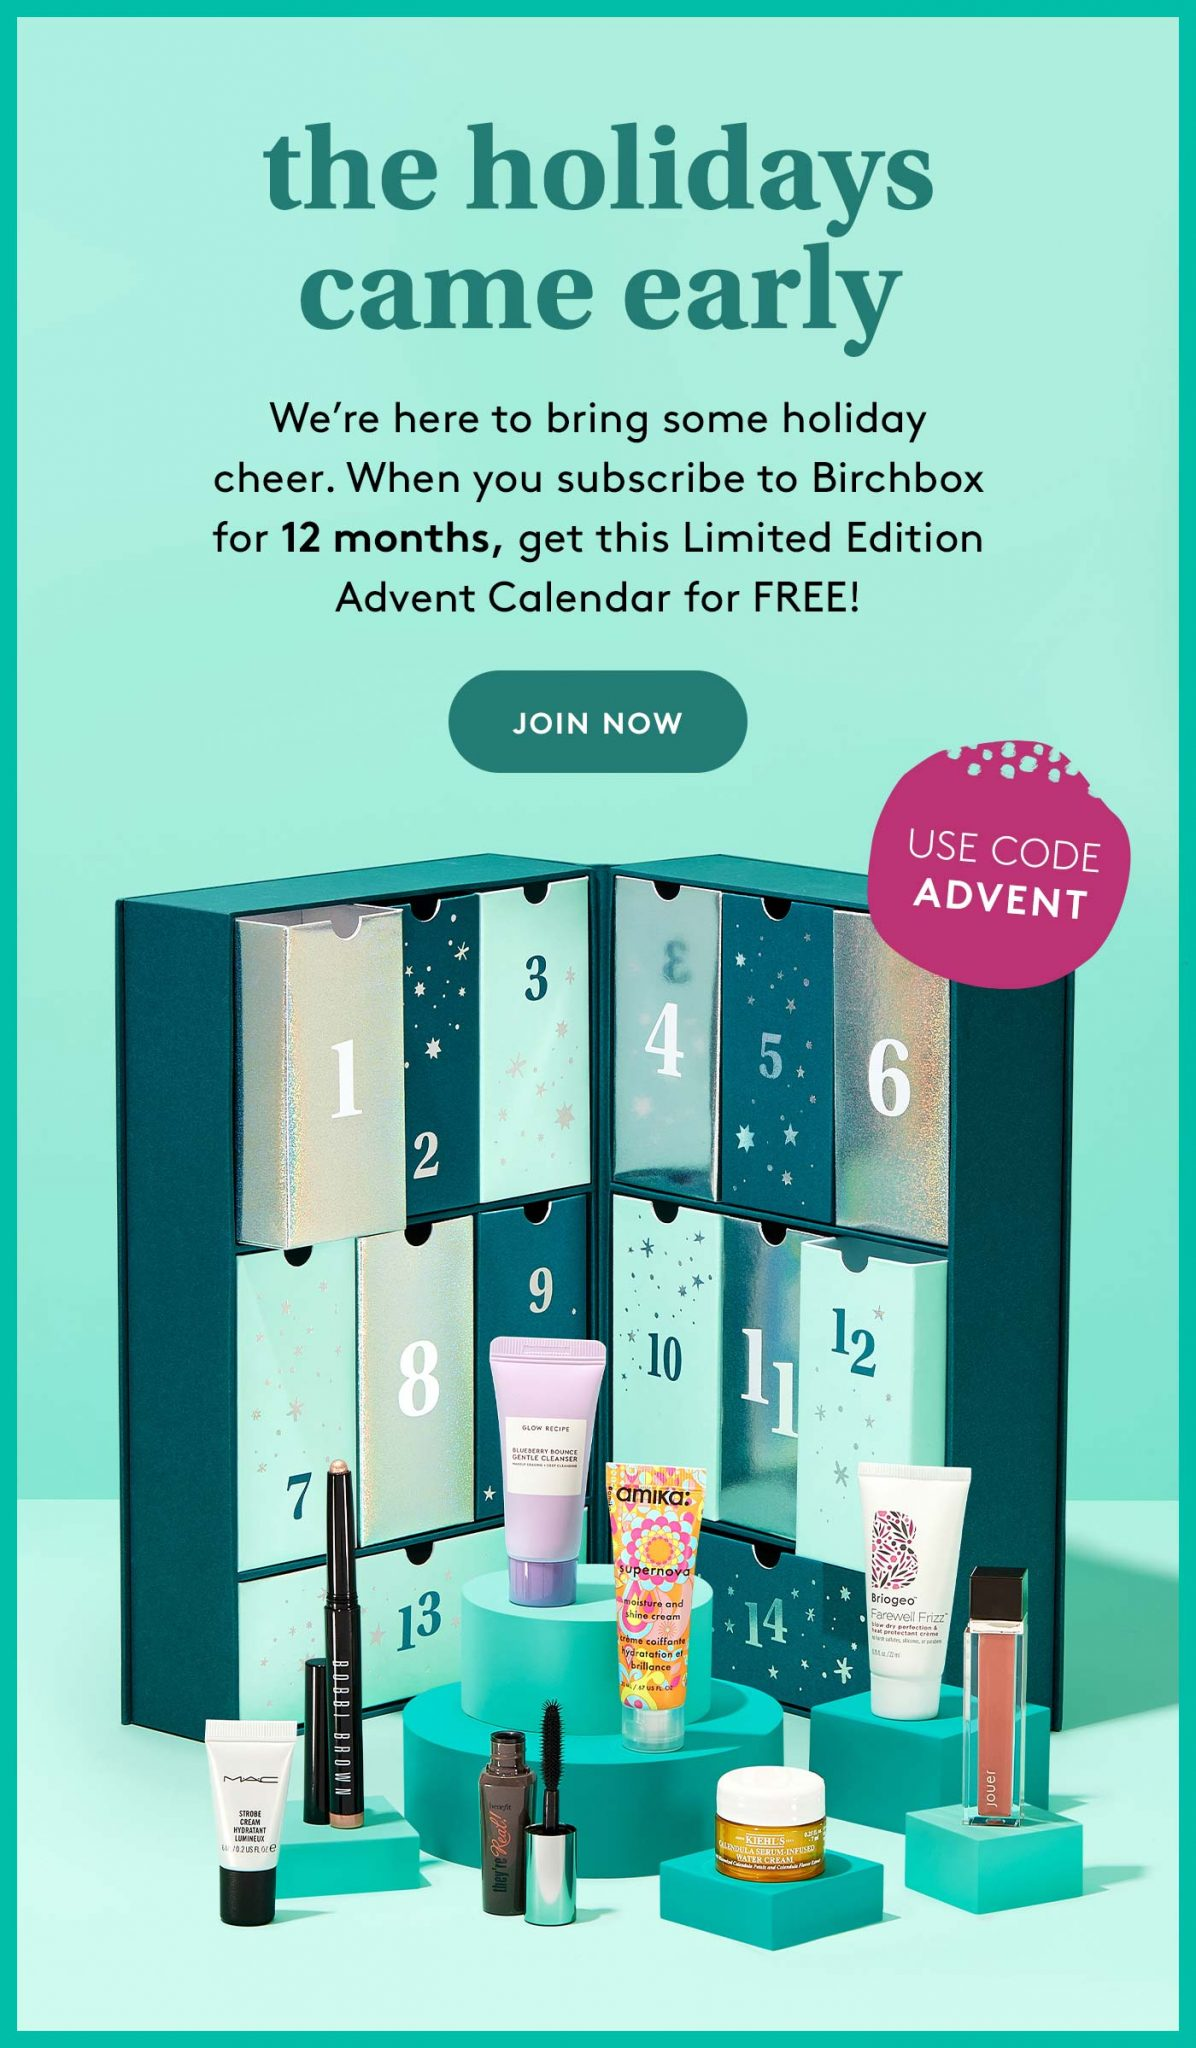 Birchbox Annual Subscription Coupon Code – Free Advent Calendar with Purchase